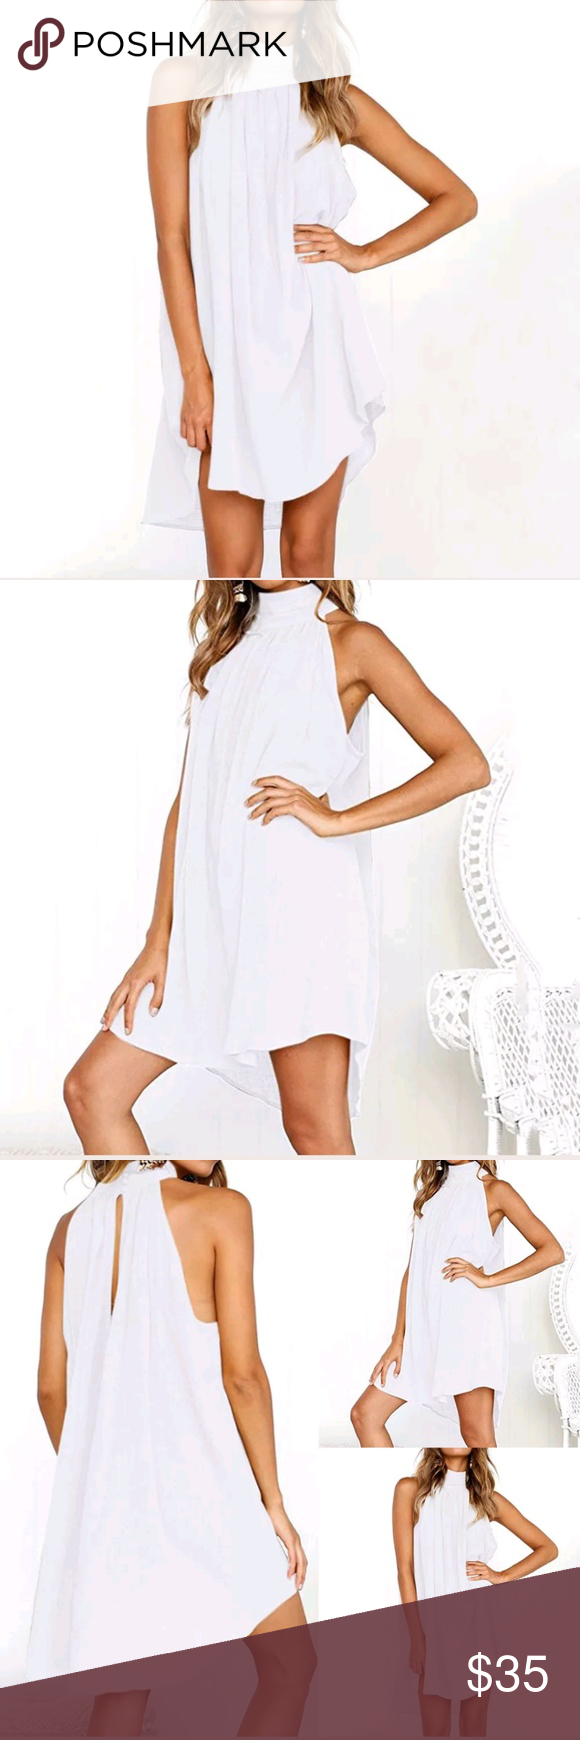 Sheer Gauze Halter Dress